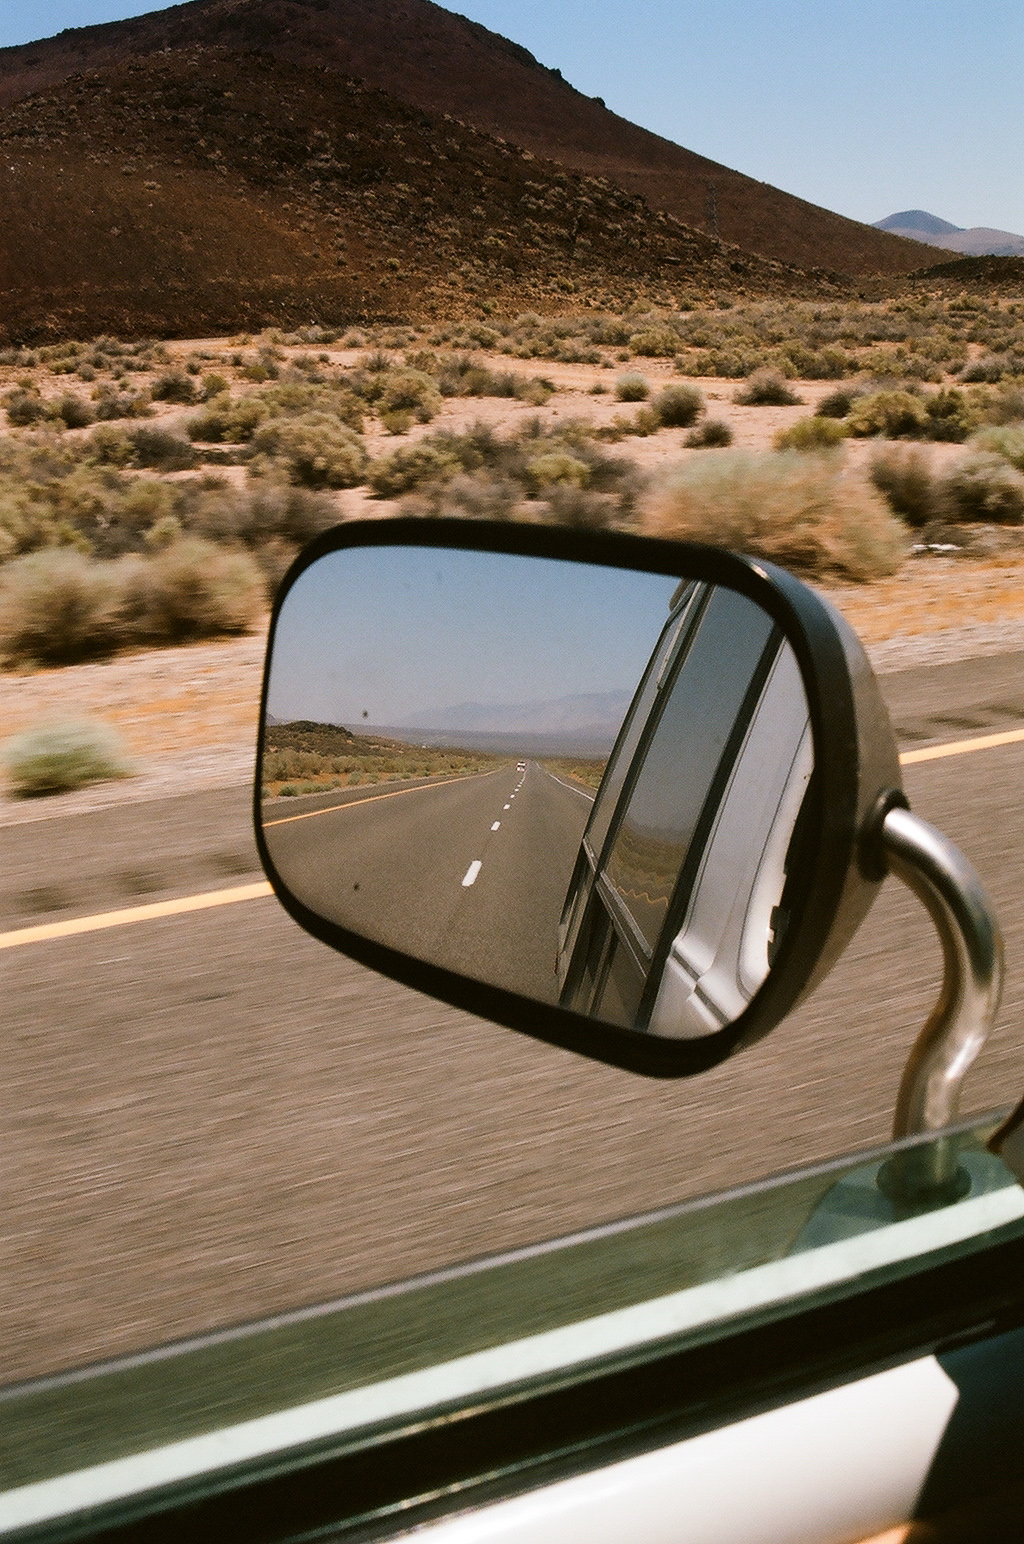 Driving through the desert with no AC.